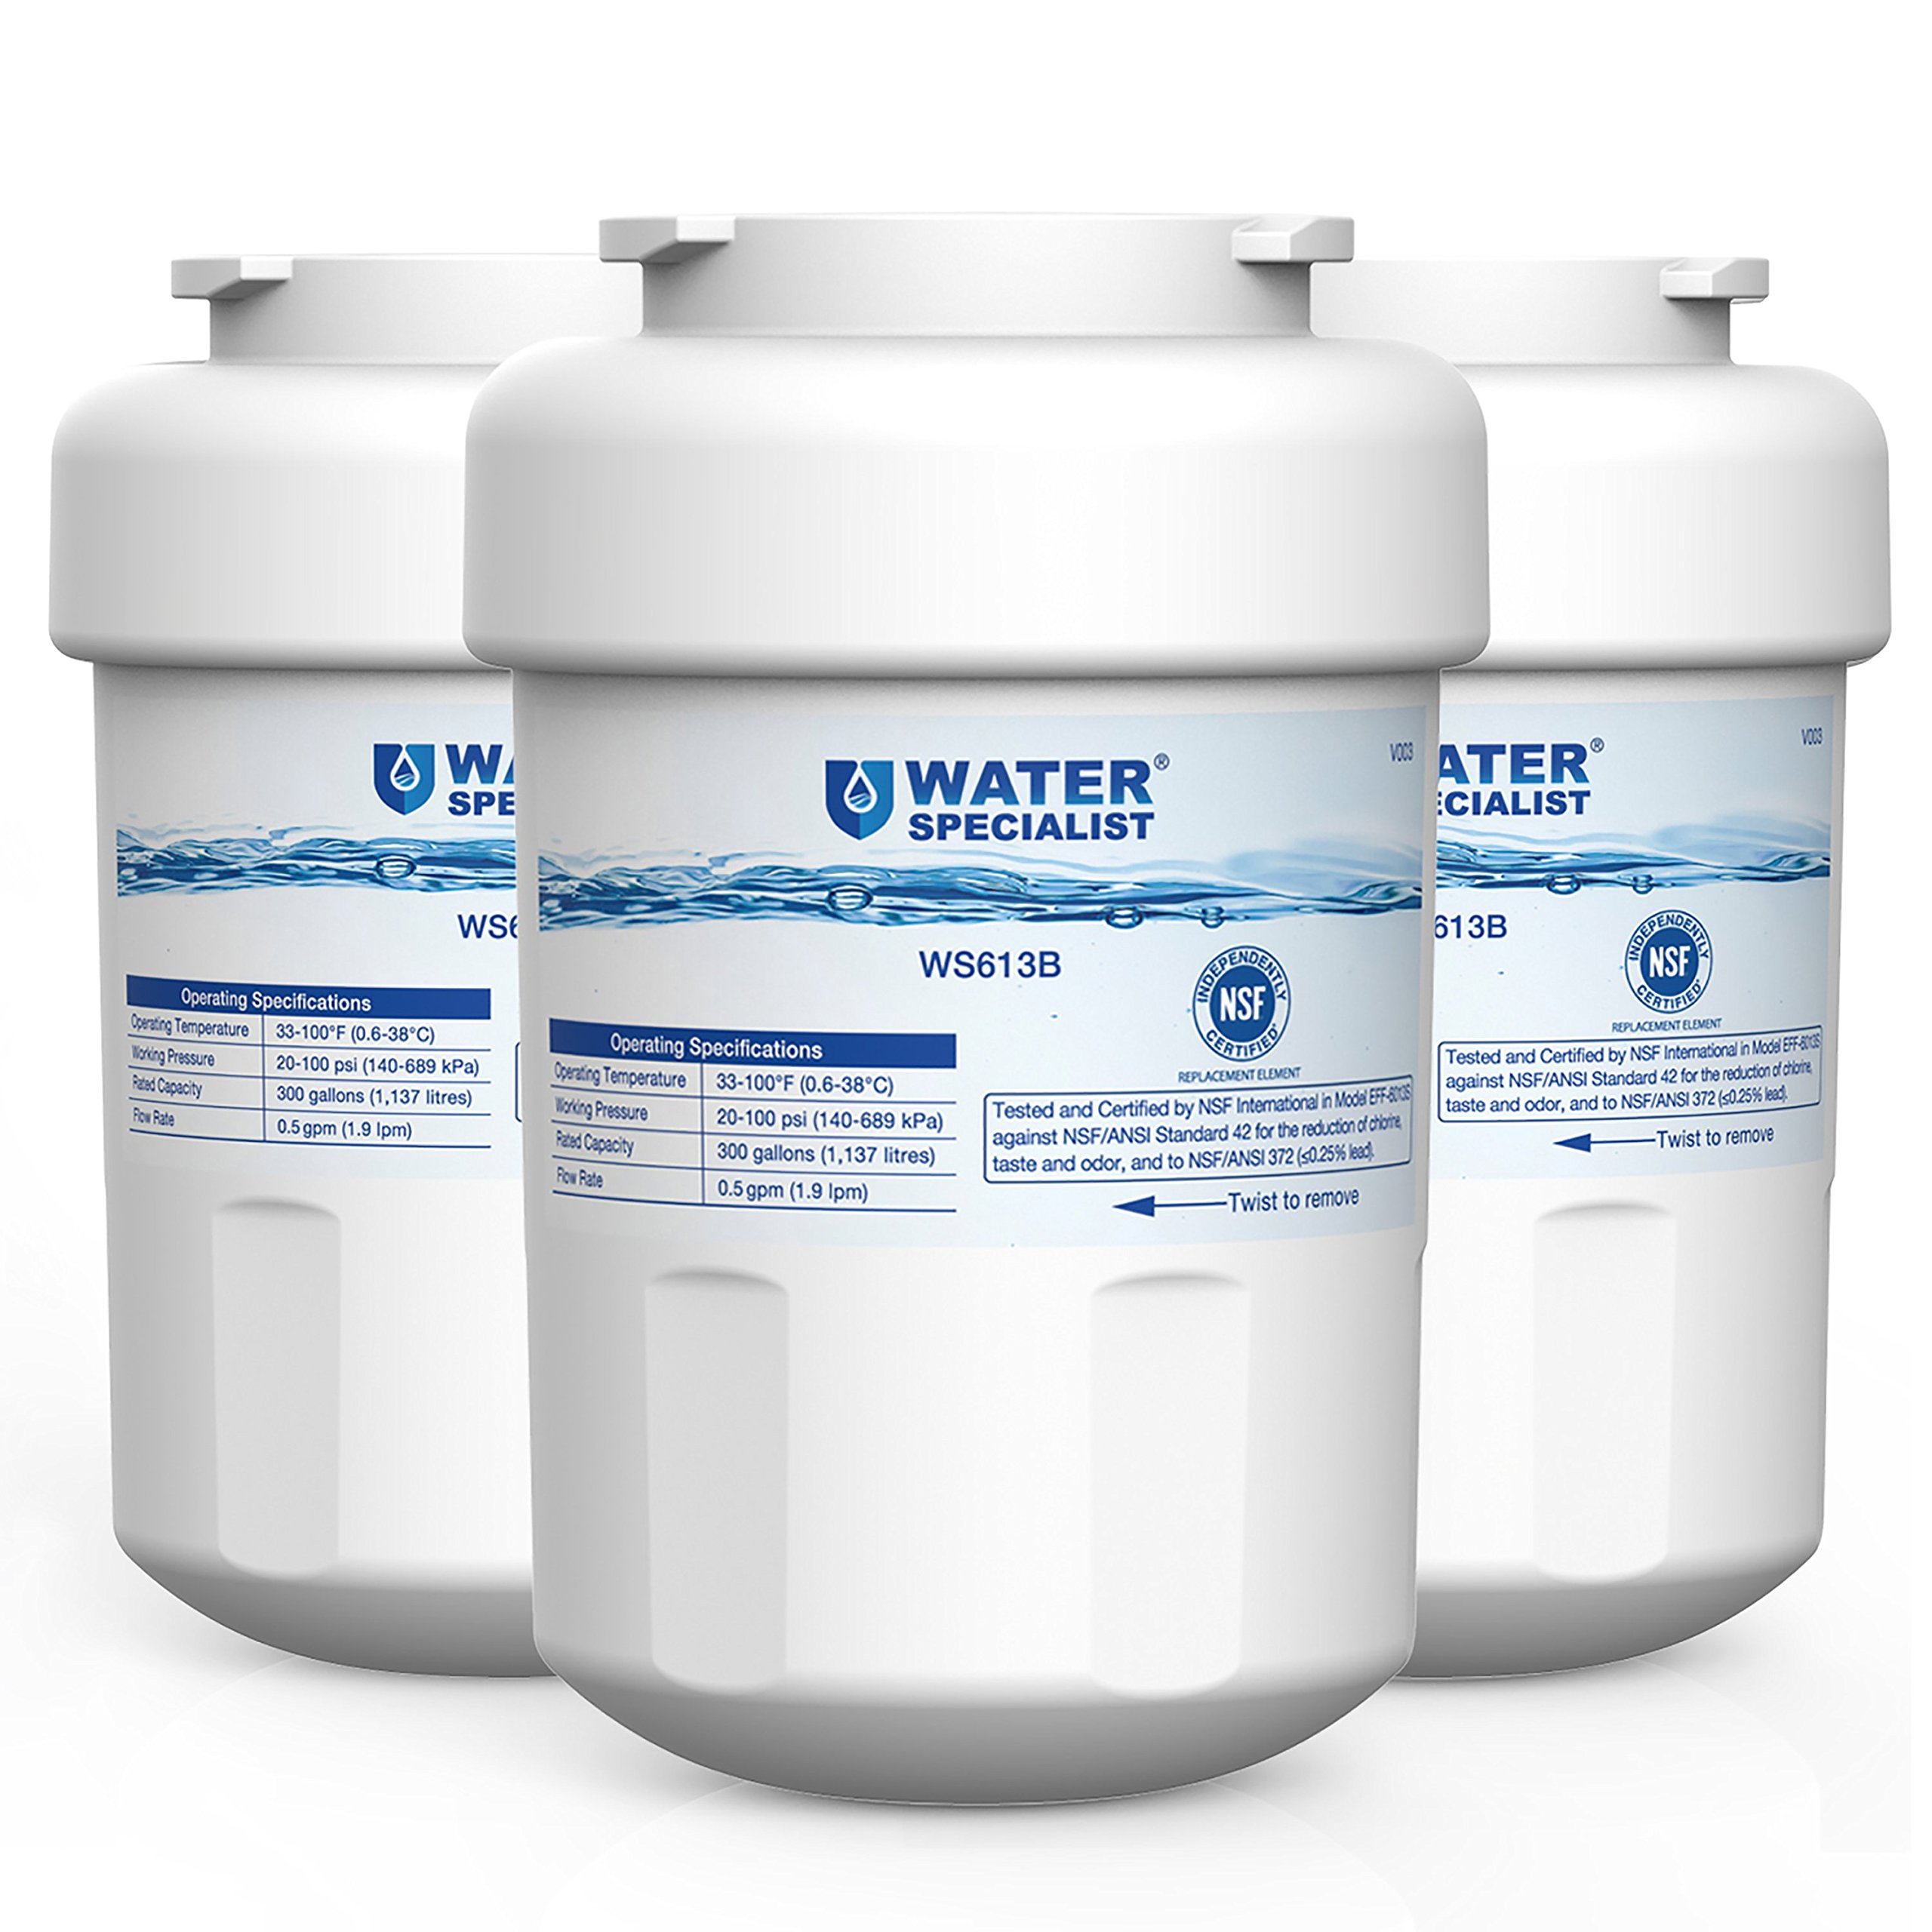 Waterspecialist MWF Replacement Refrigerator Water Filter, Compatible with GE MWF, SmartWater, MWFP, MWFA, GWF, HDX FMG-1, WFC1201, GSE25GSHECSS, PC75009, RWF1060, 197D6321P006, 3 Pack